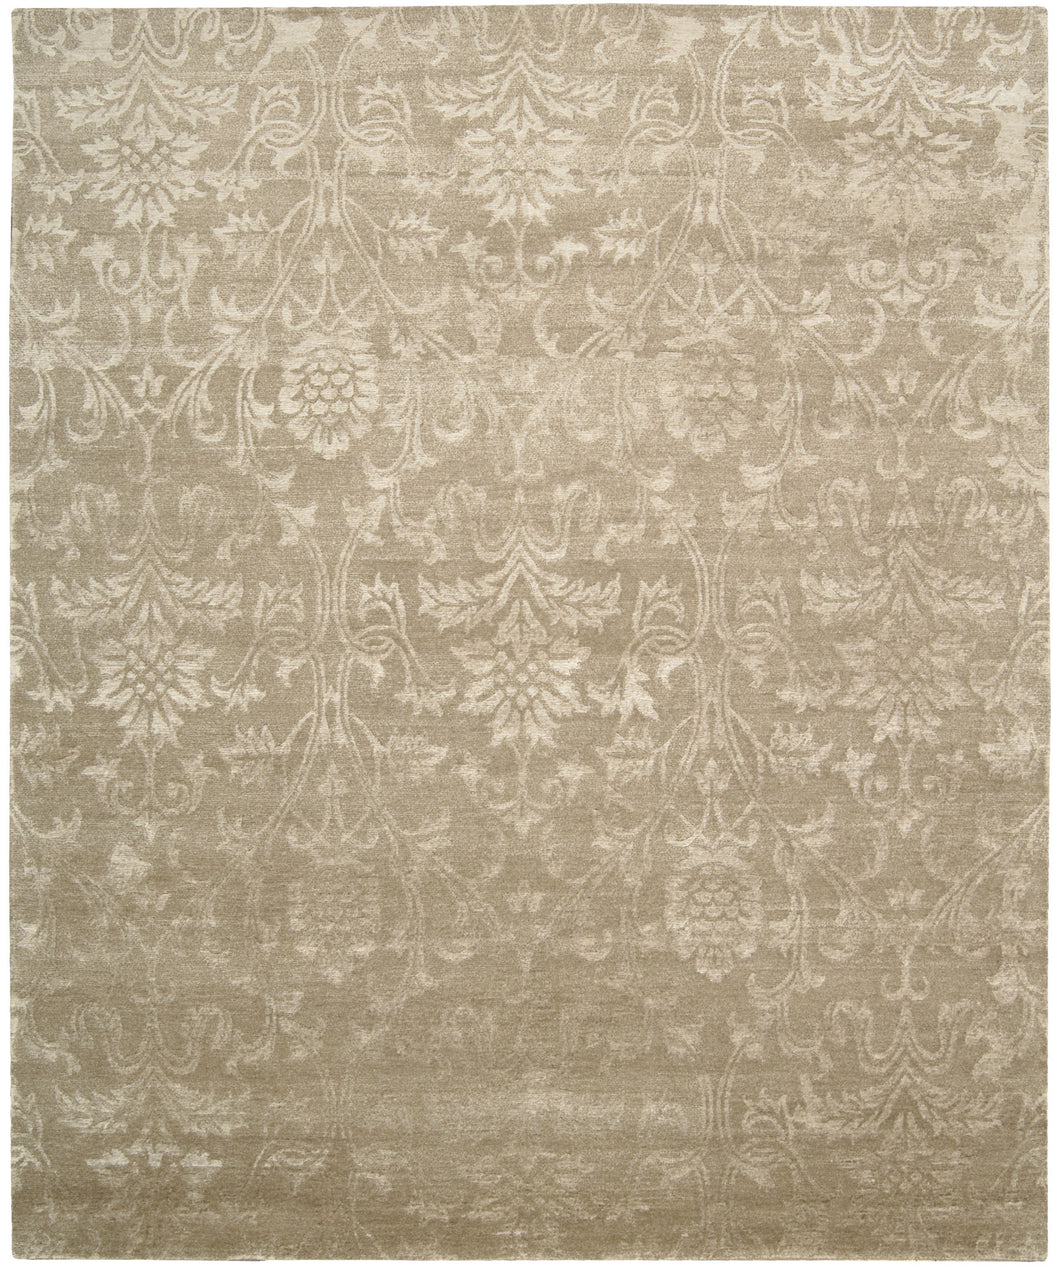 Nourison Silk Shadows Light Gold Area Rug SHA03 LGD